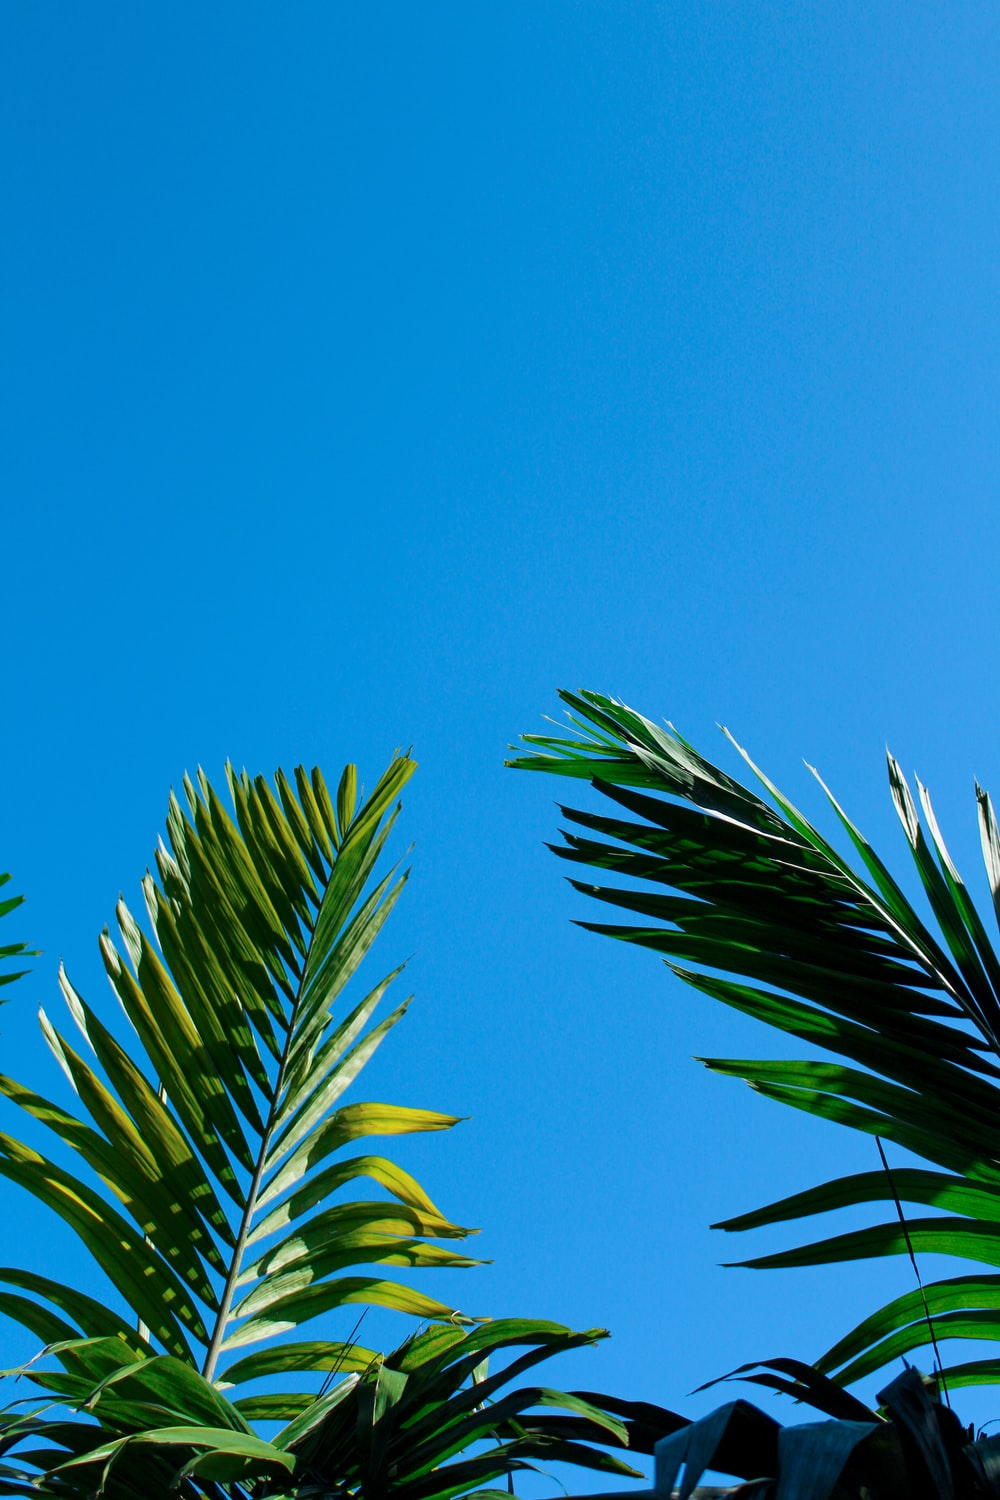 green-leafed plant under blue sky